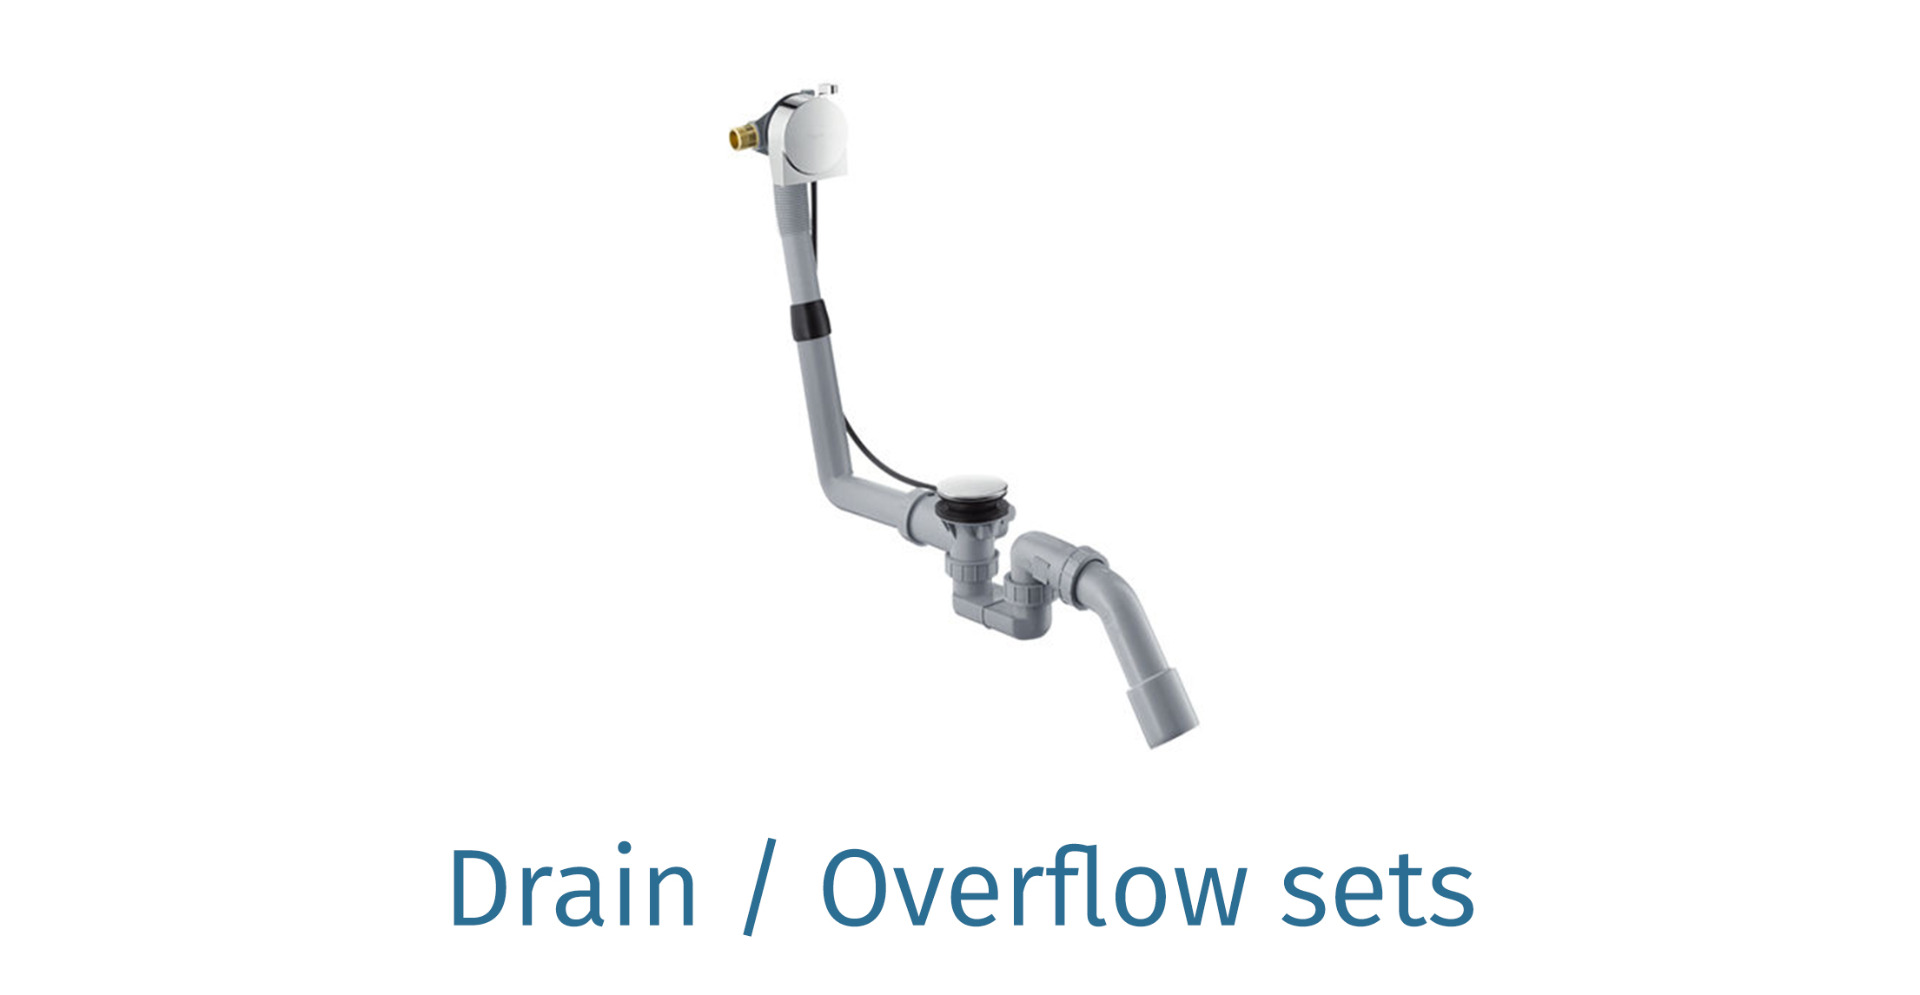 Drain overflow sets